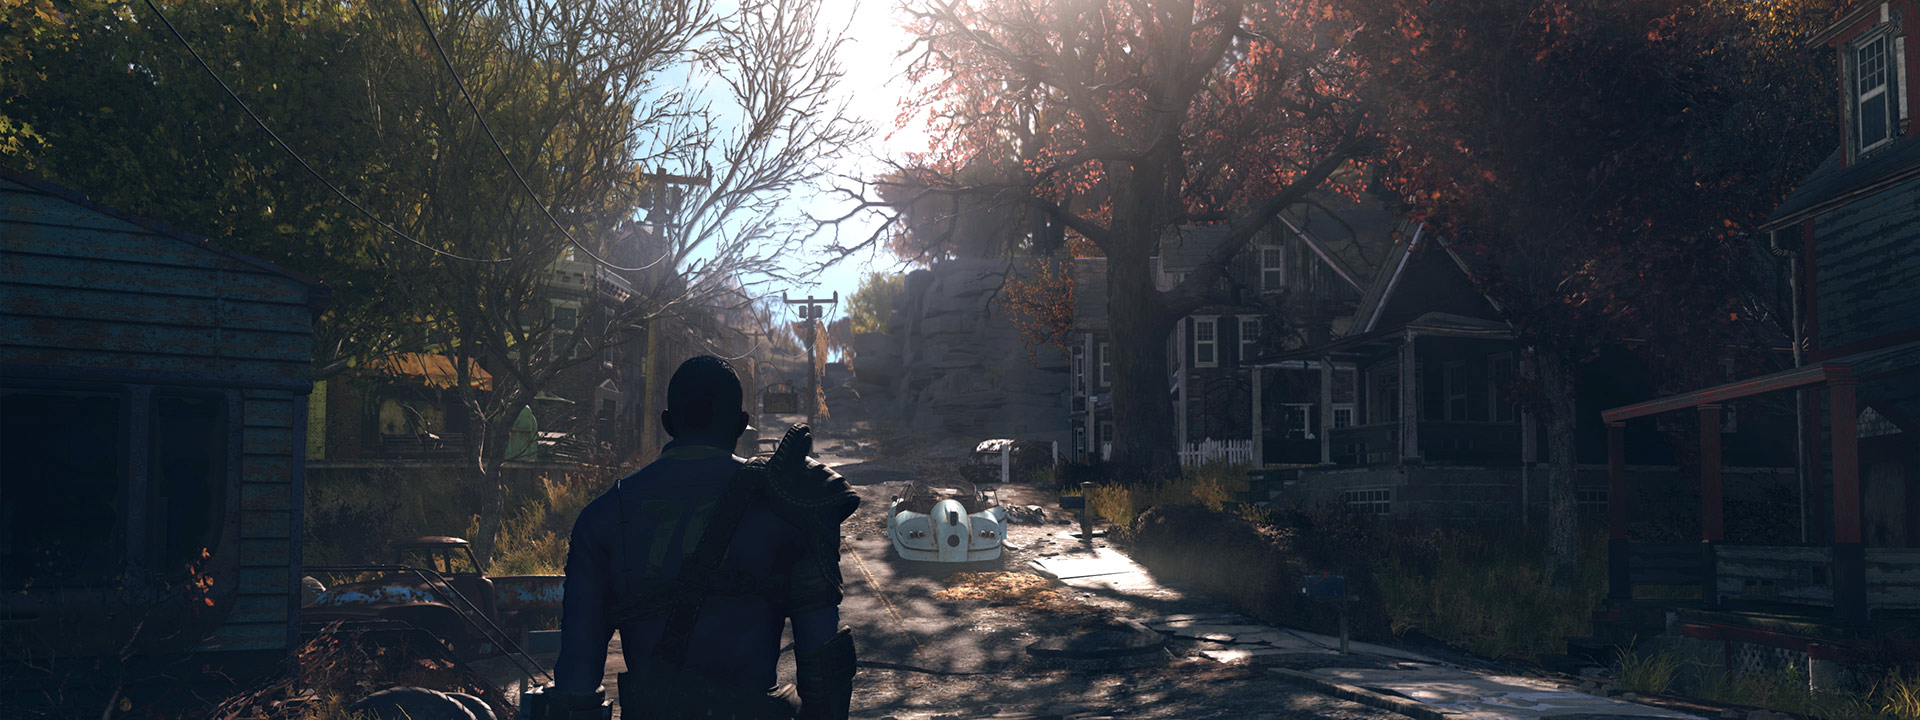 A character walks down a road through a deserted town